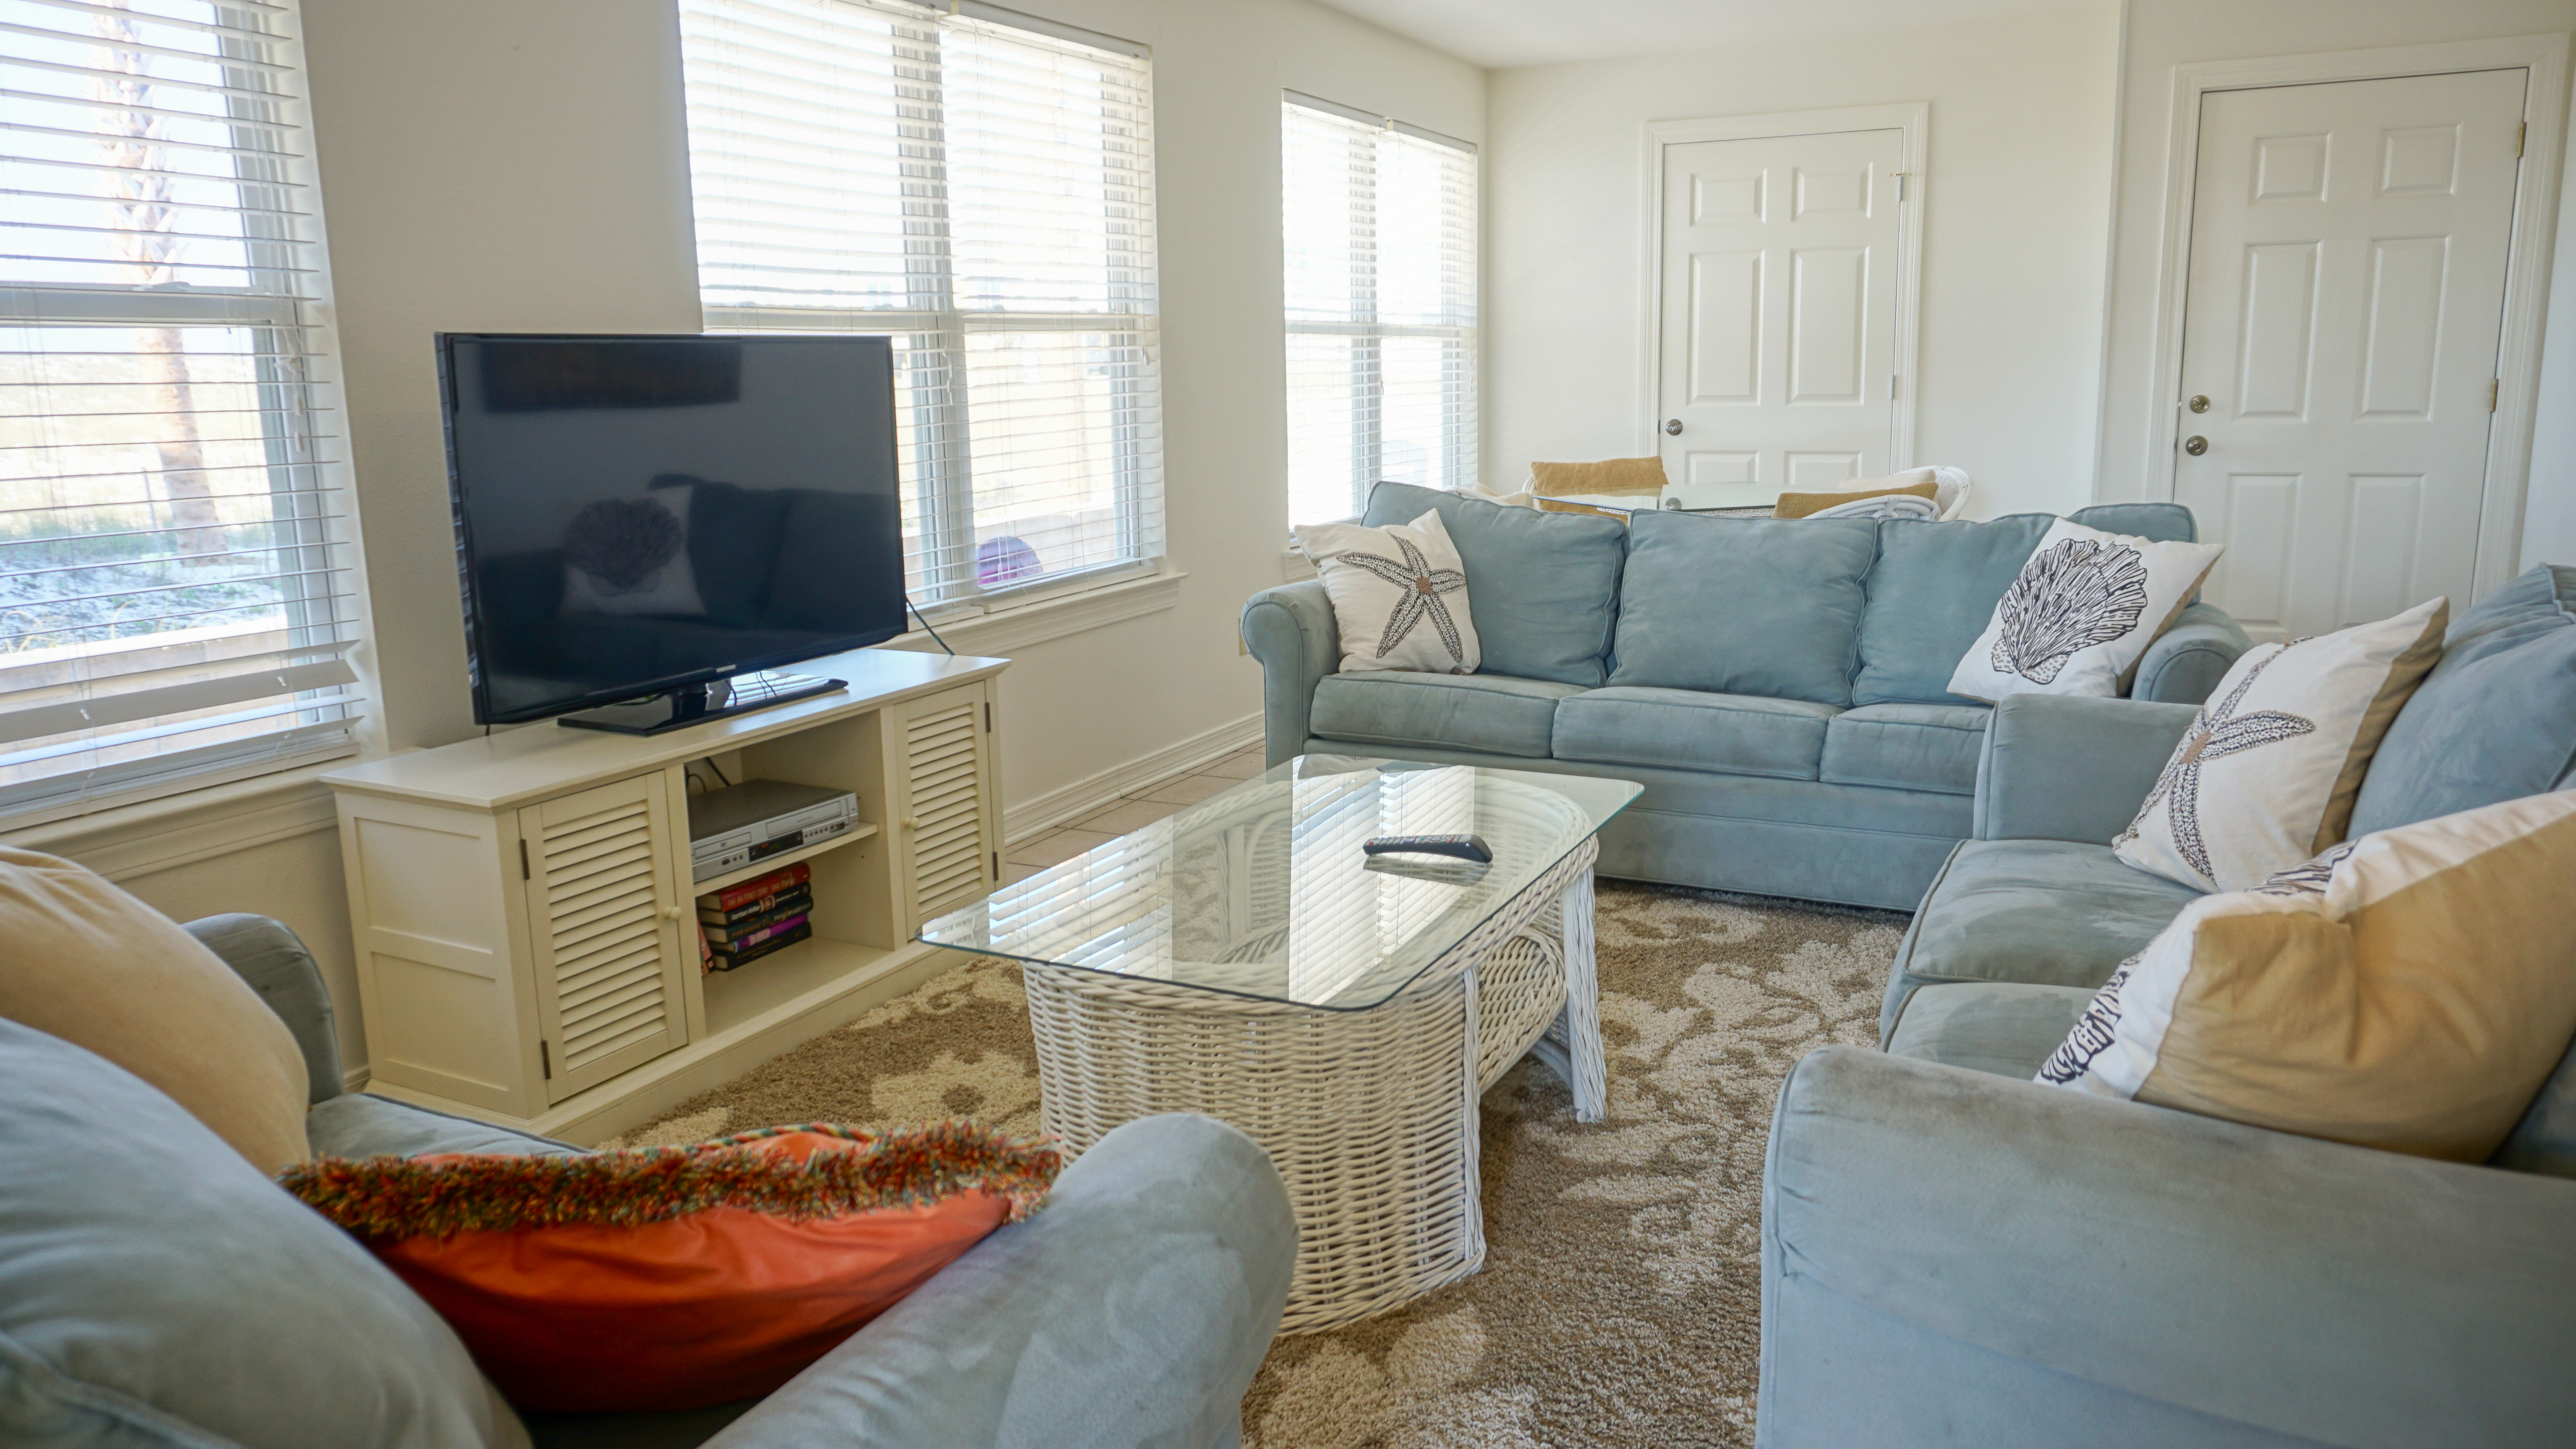 Avenida 14 - 402 House / Cottage rental in Pensacola Beach House Rentals in Pensacola Beach Florida - #12